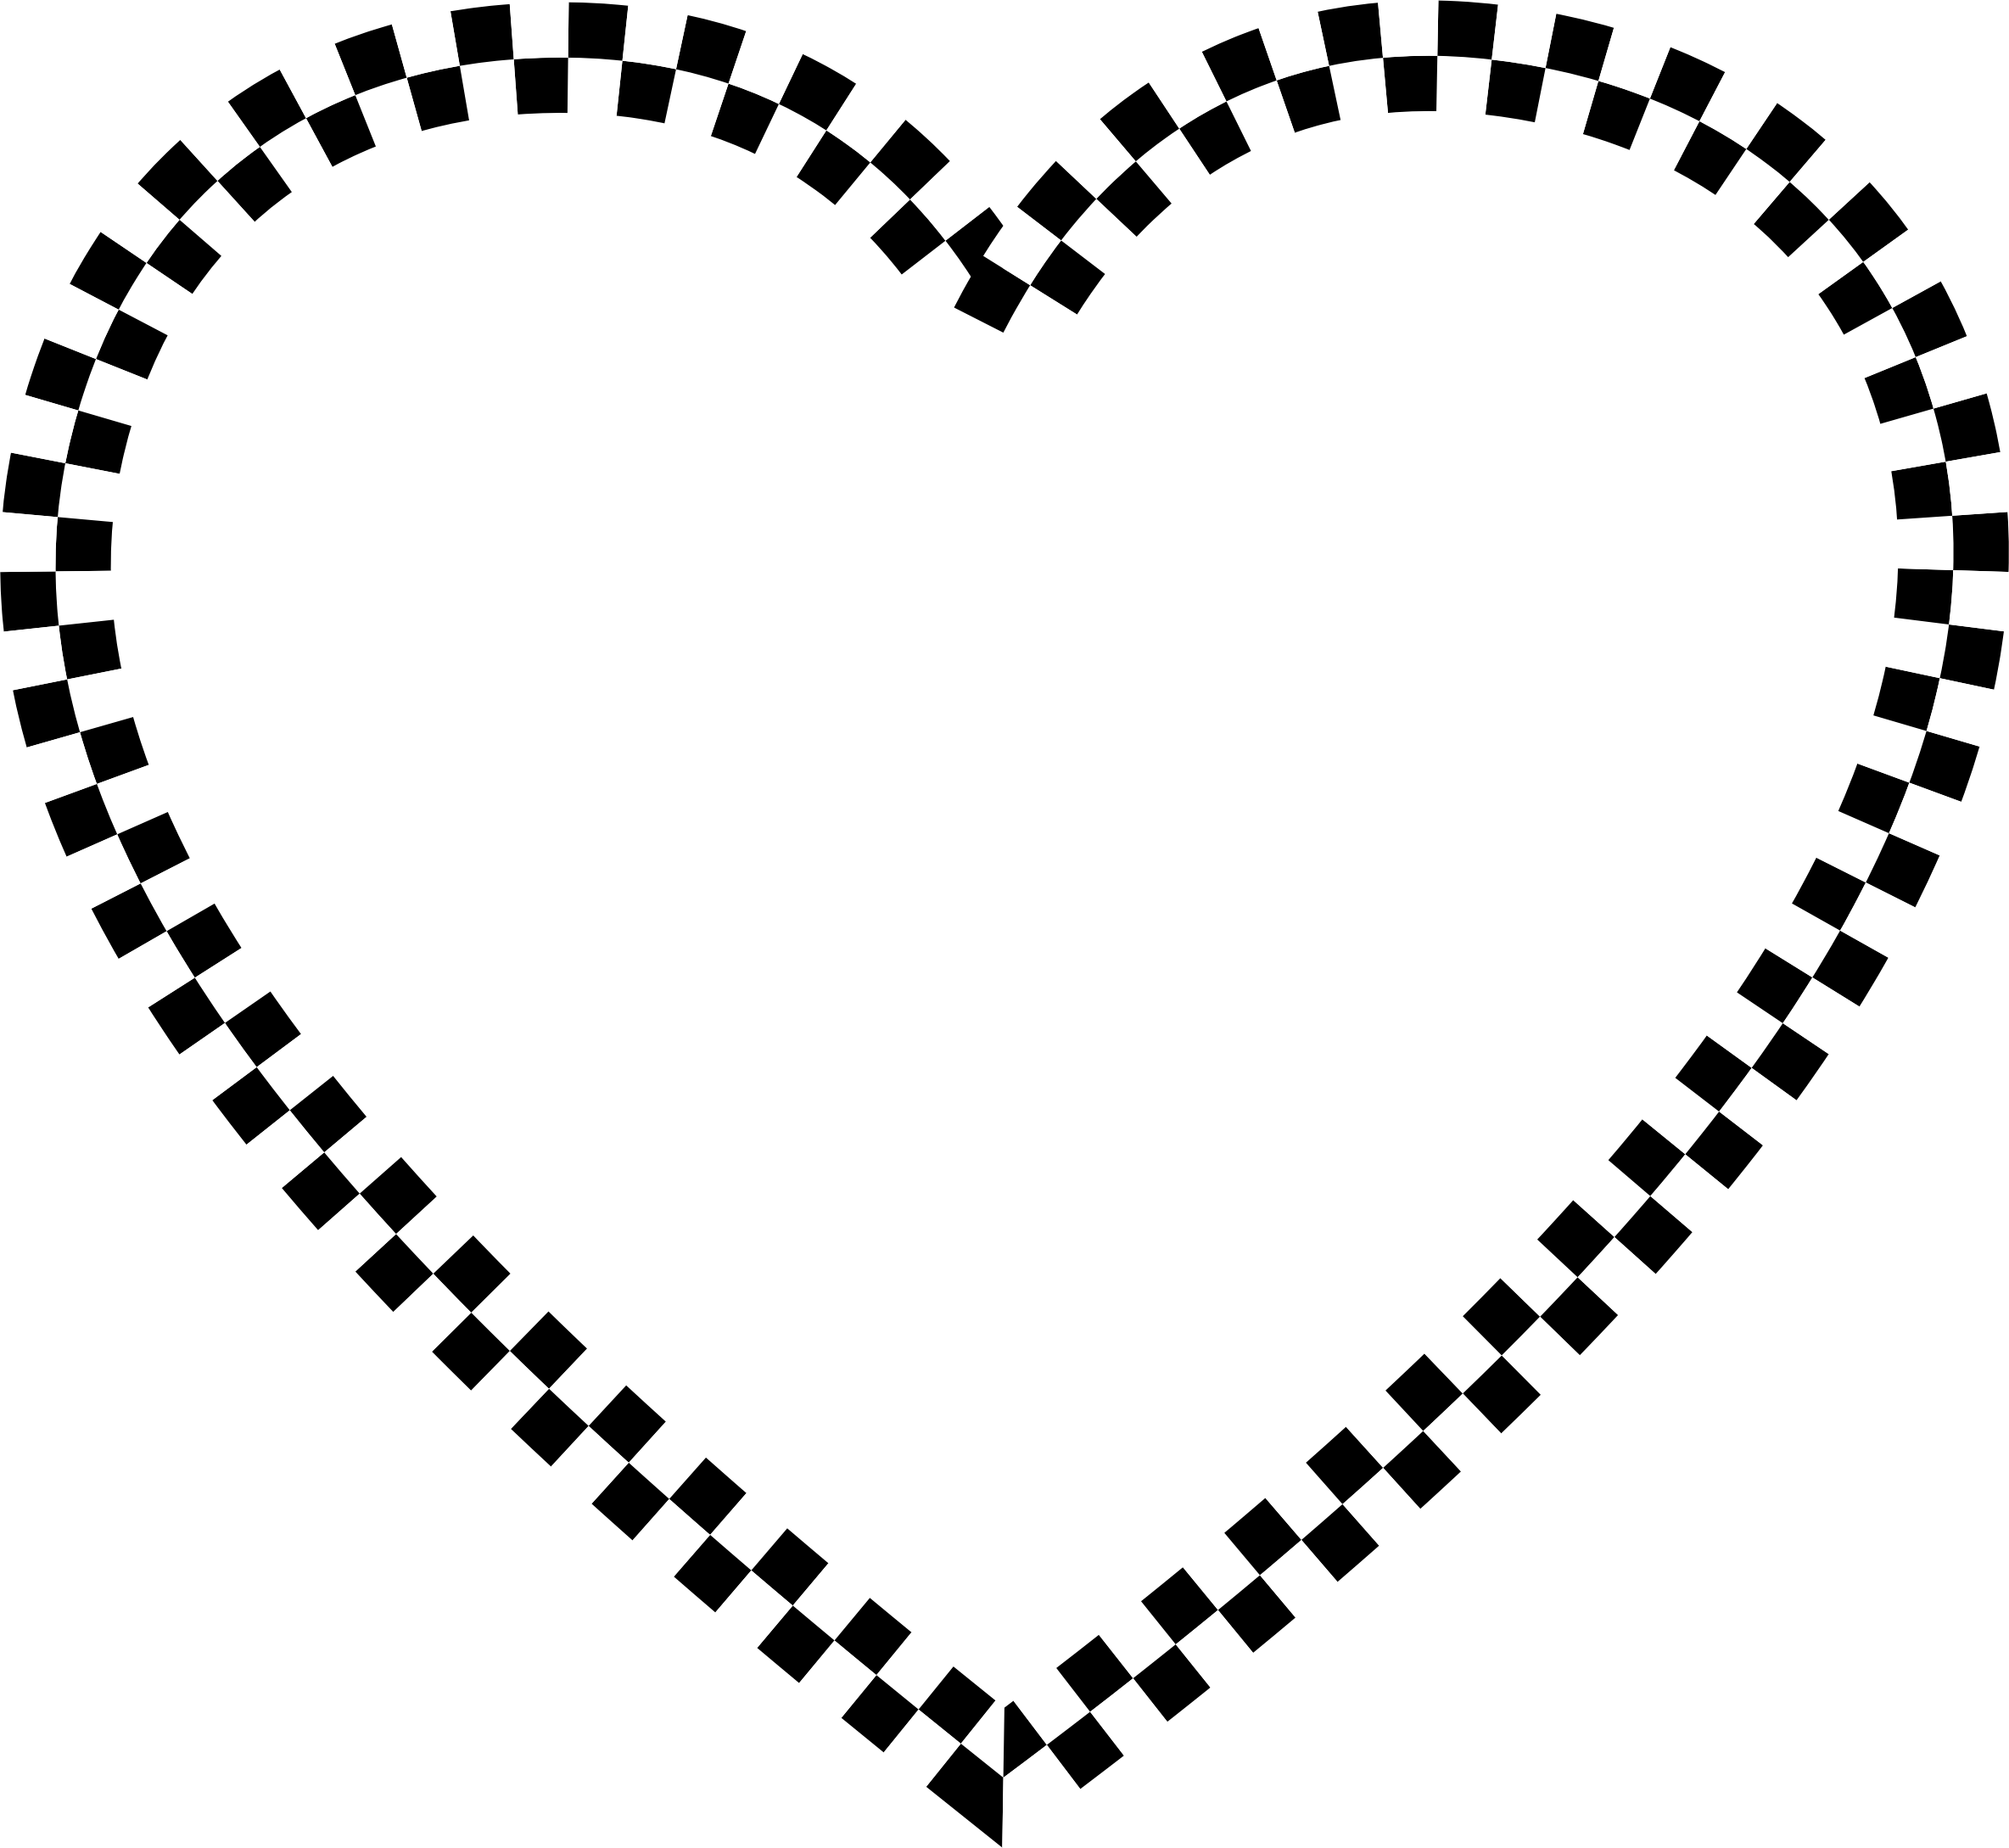 Checkered icons png free. Heart clipart plaid